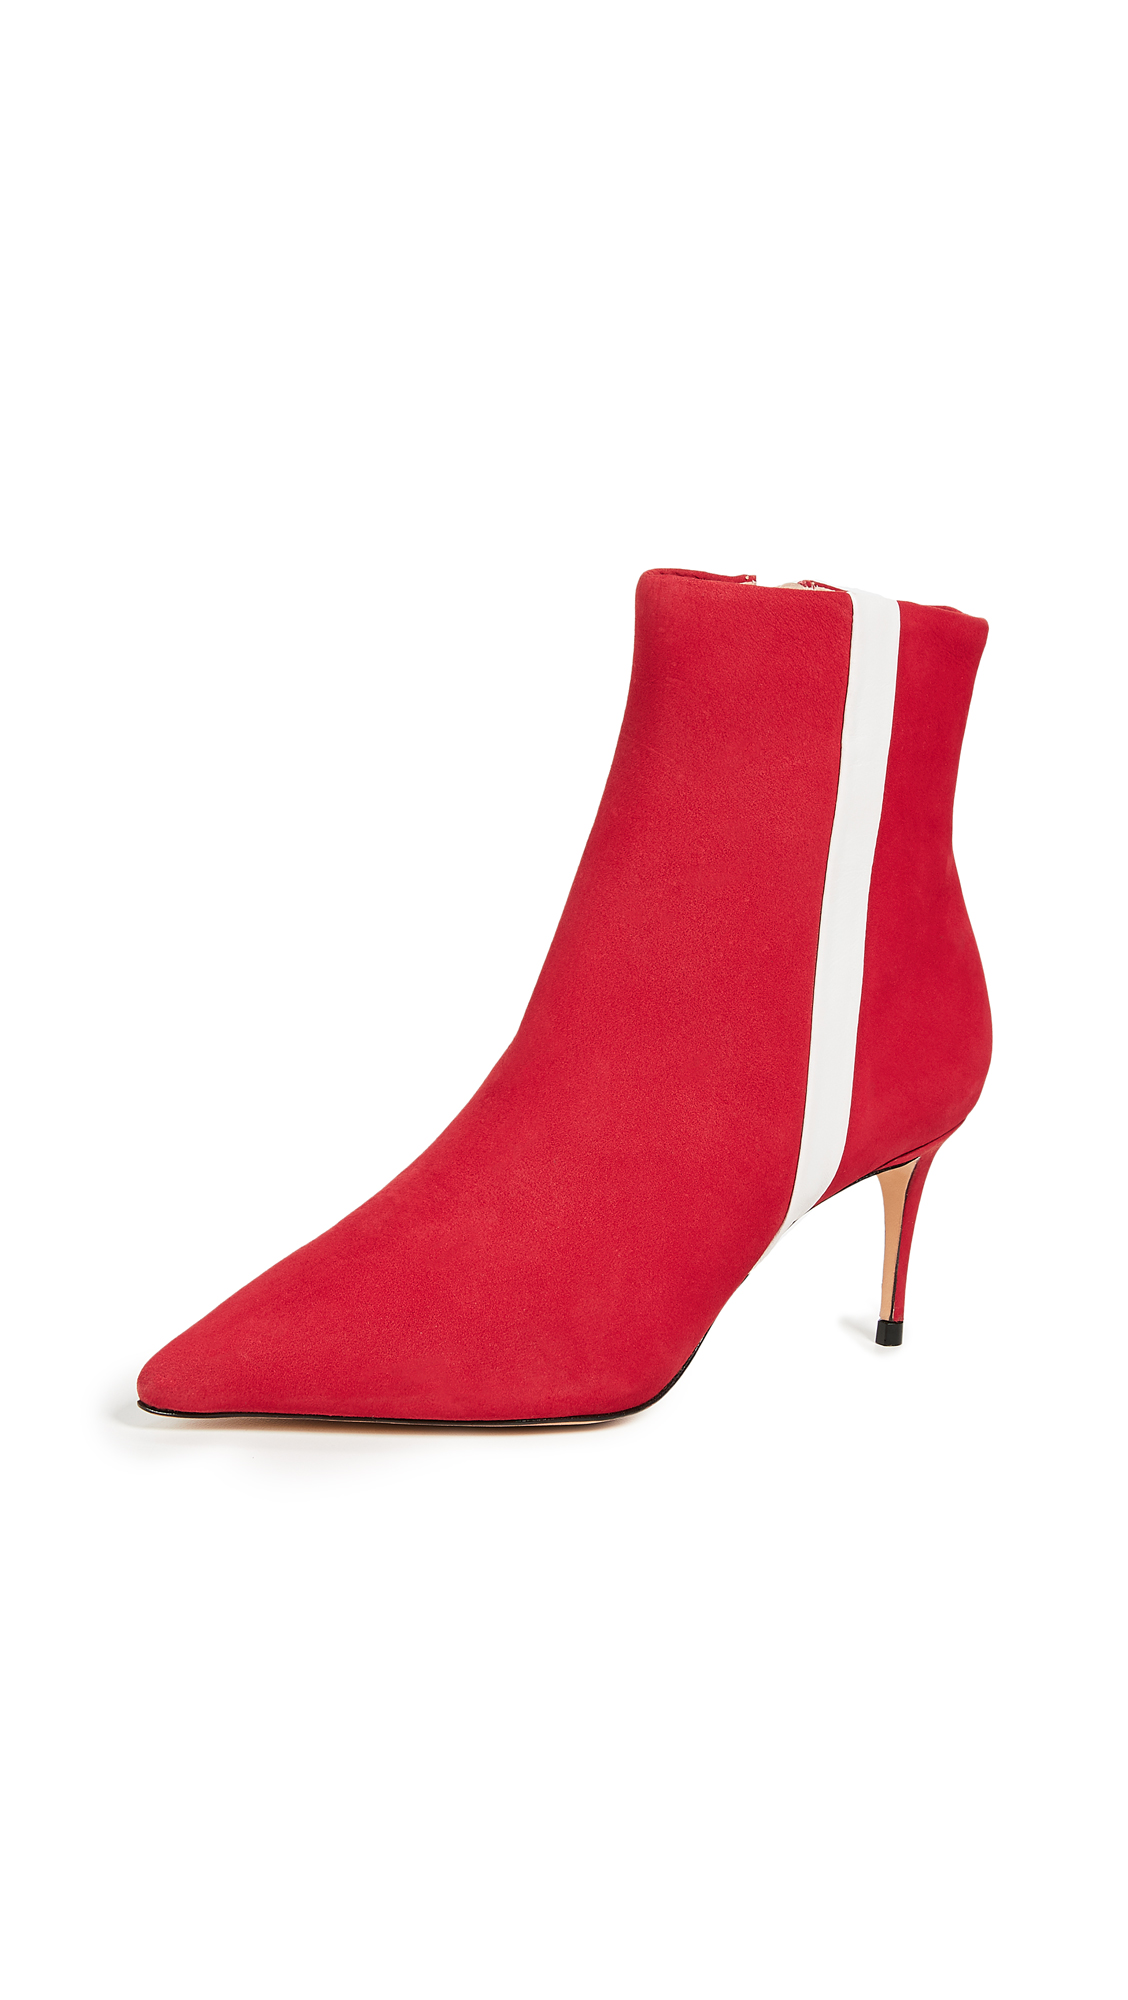 Schutz Suede Adrien Stripe Booties - Red/White